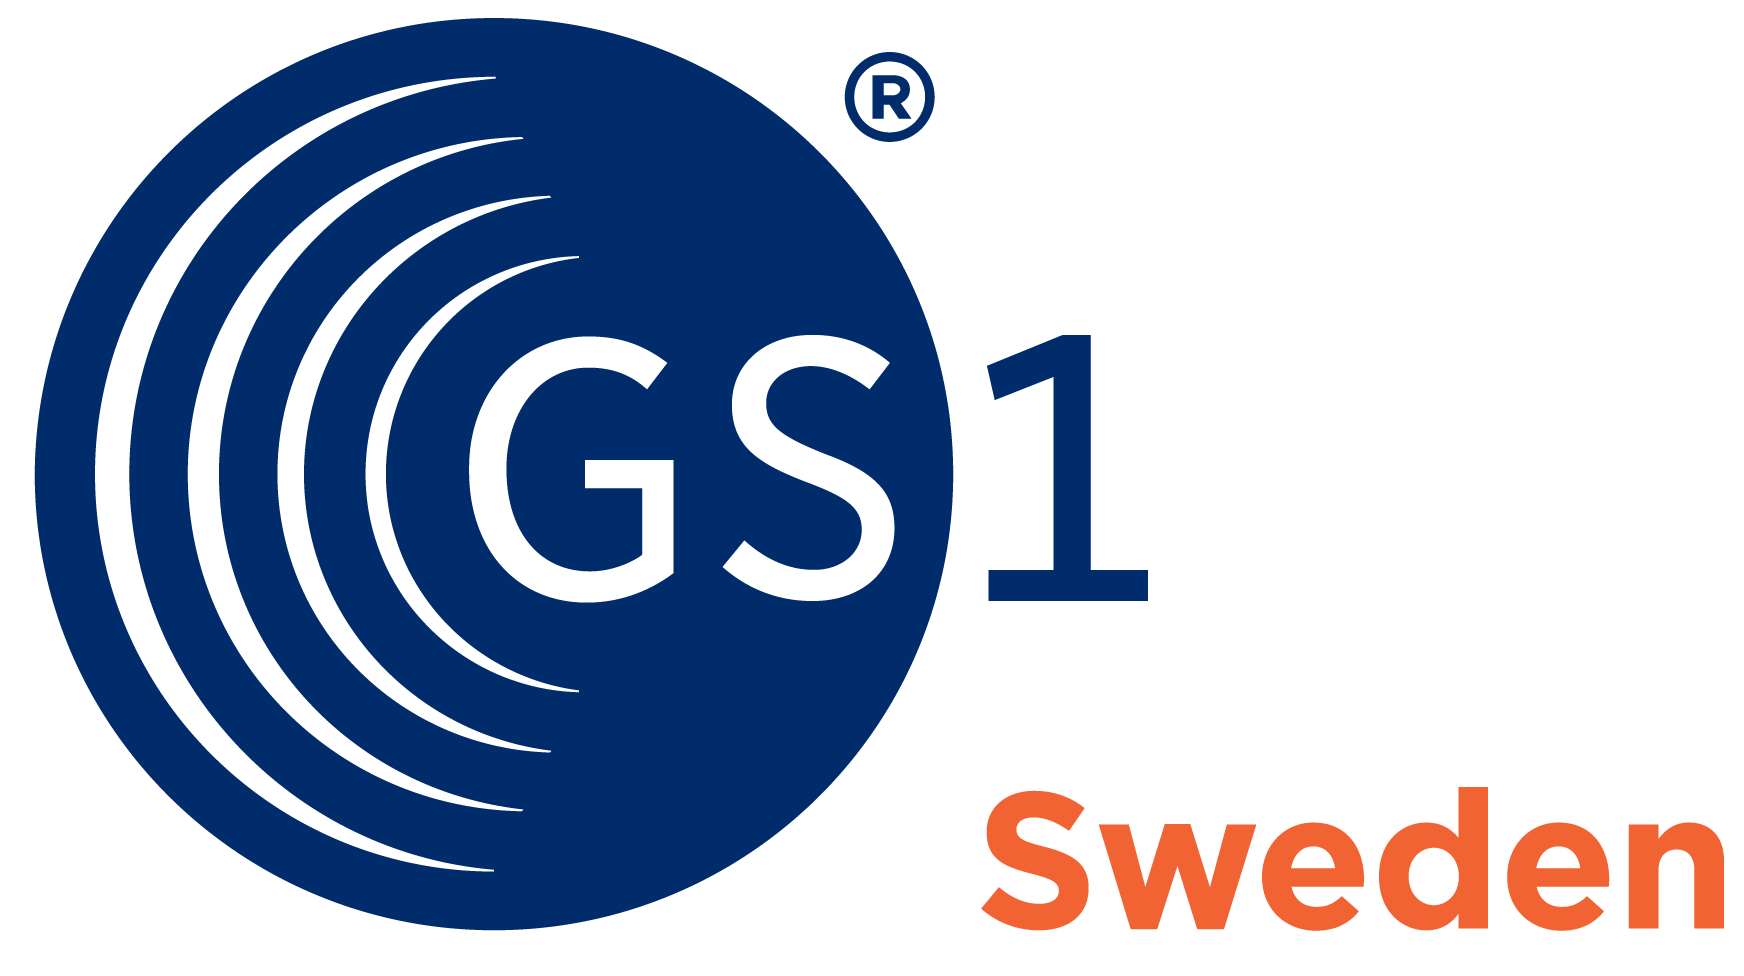 gs1_sweden_large_rgb.png